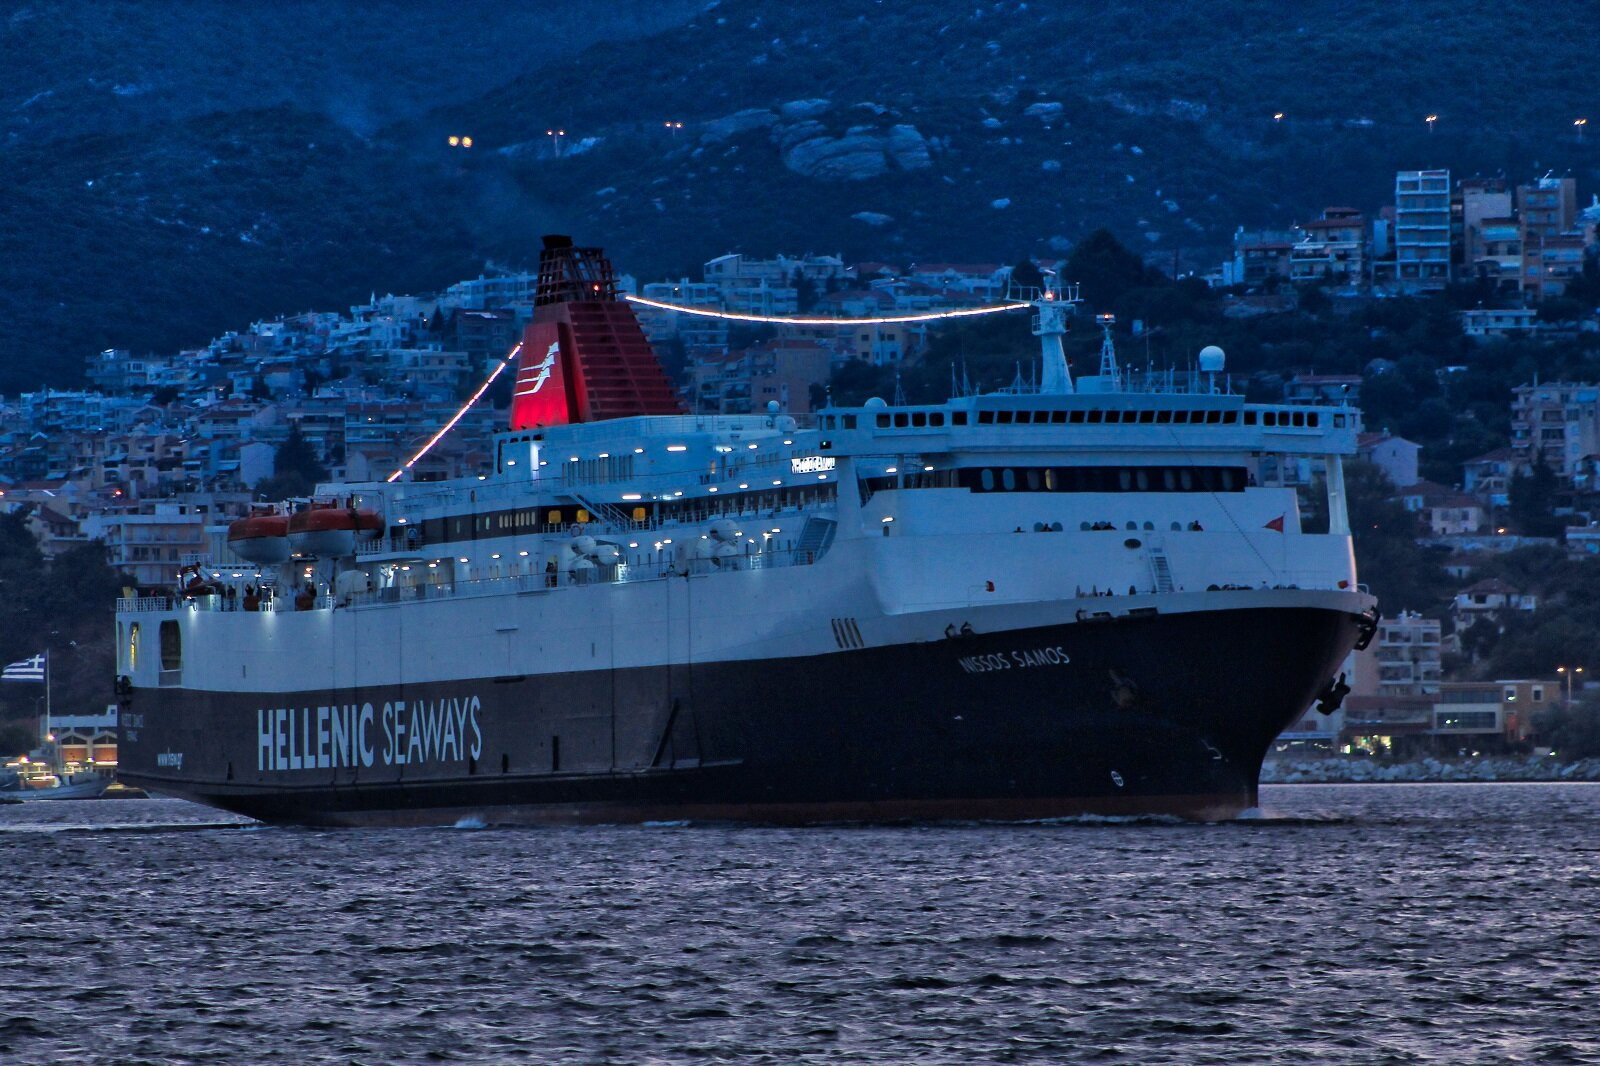 ΝISSOS SAMOS arrival at Kavala Port